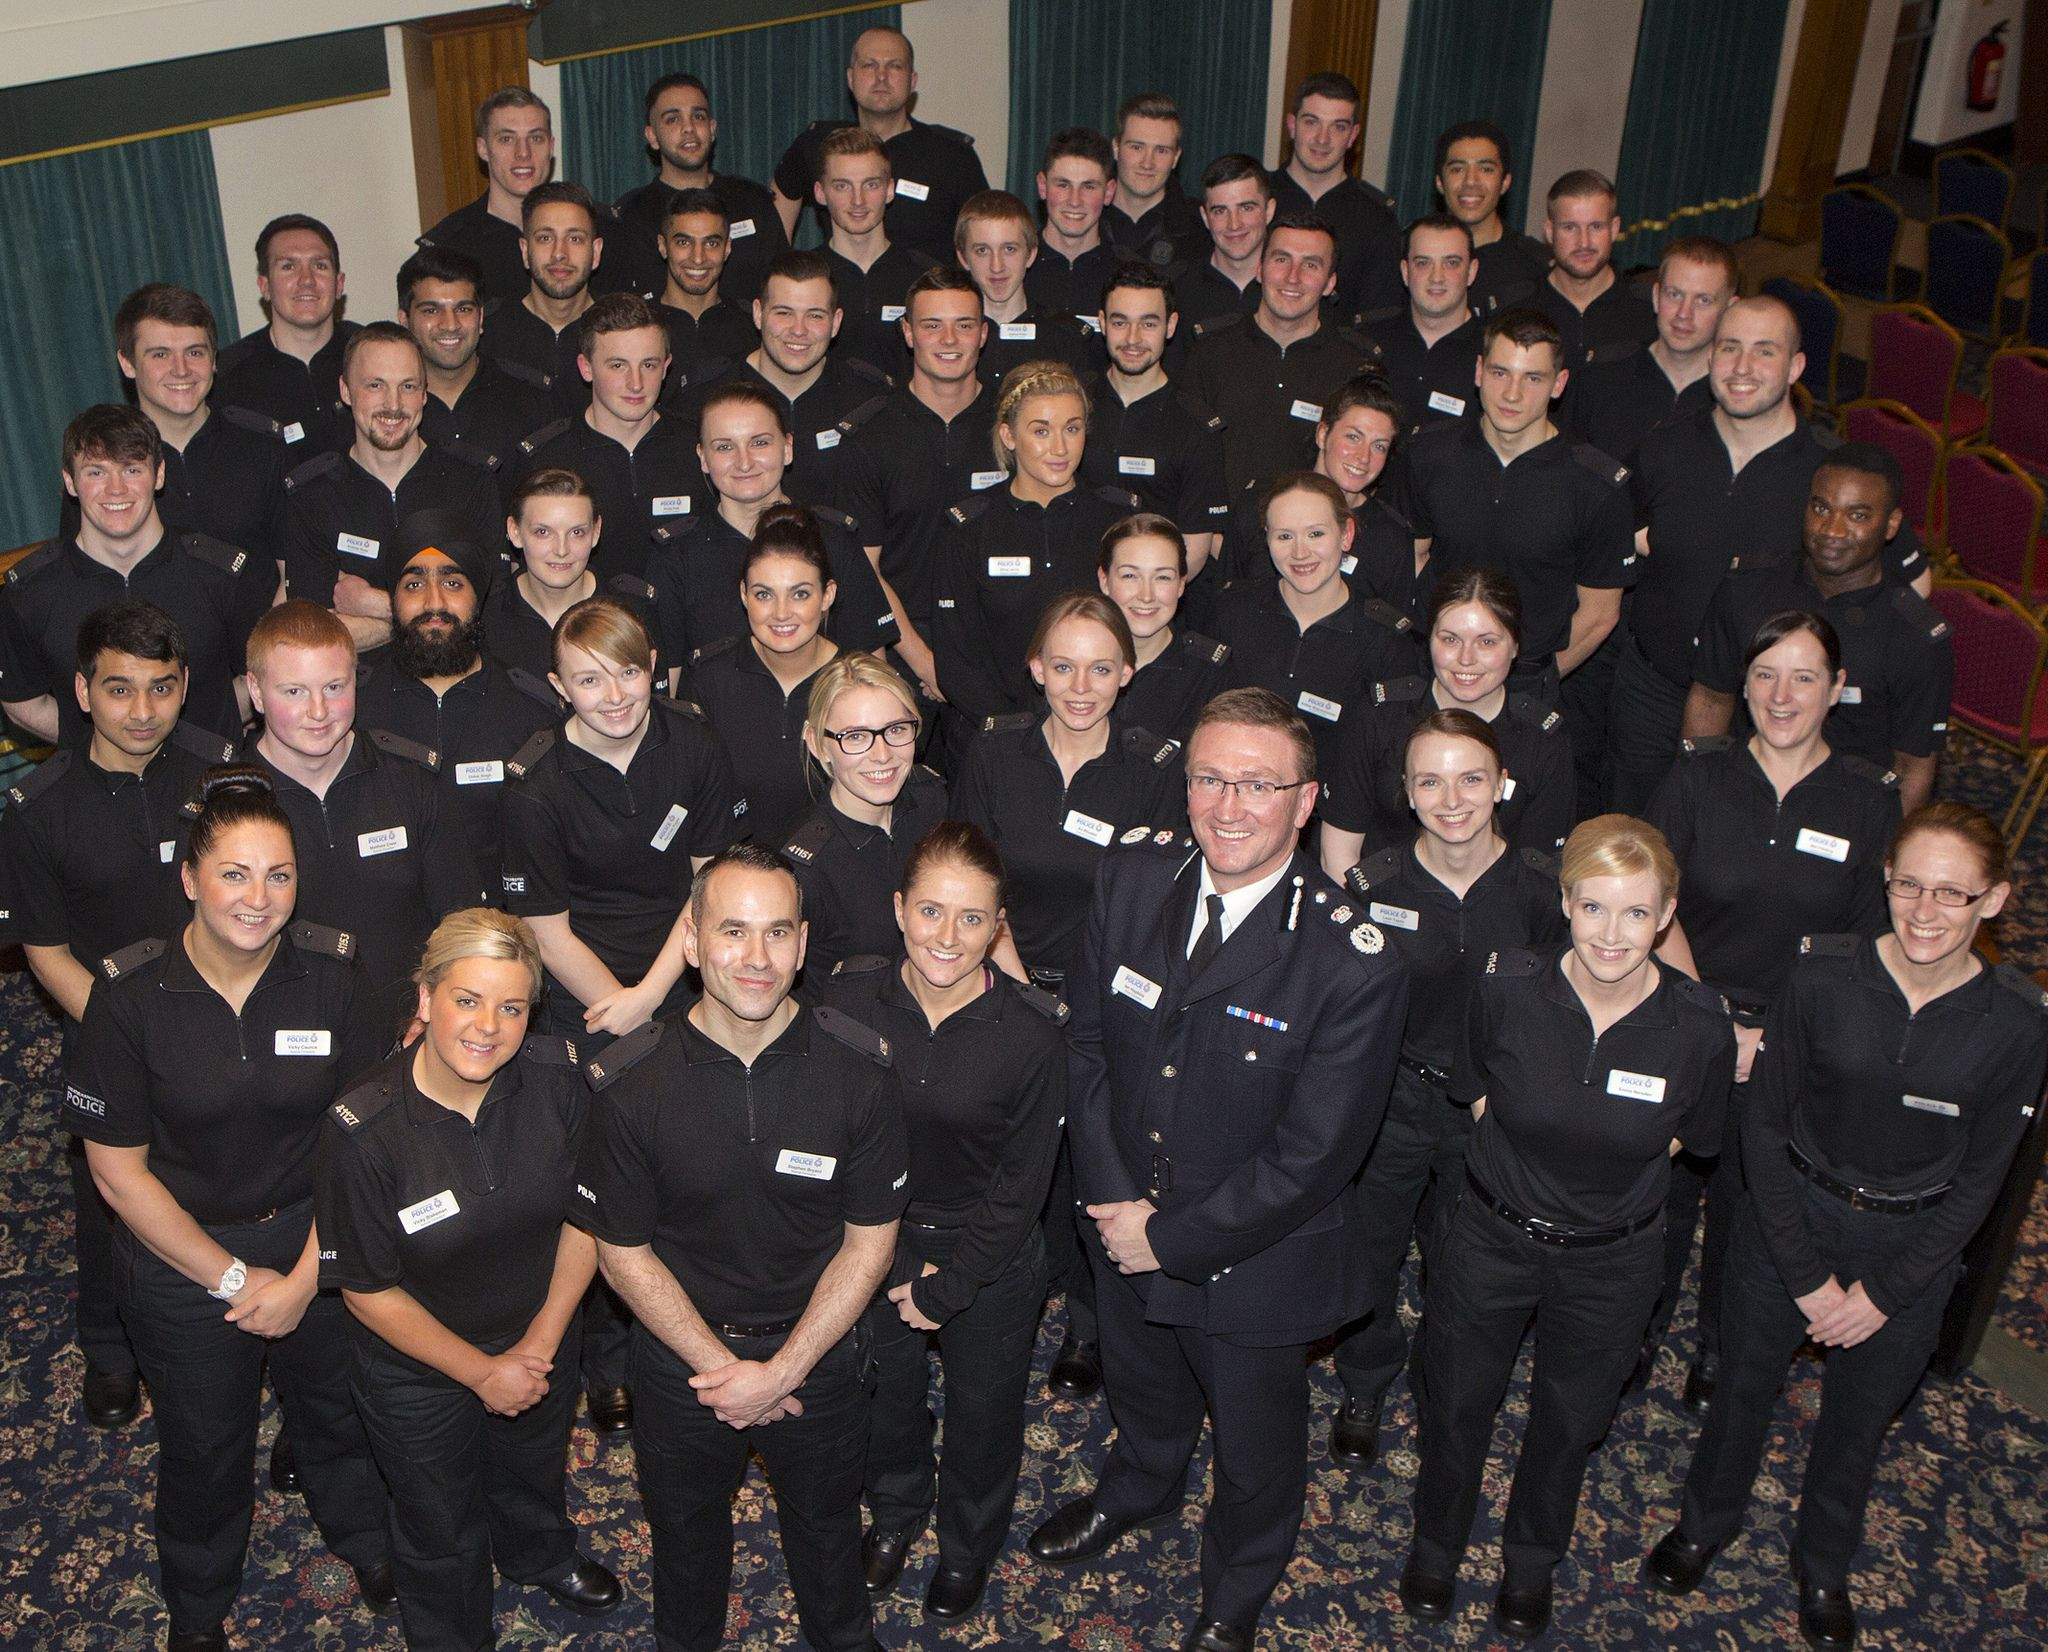 Swearing The Oath Manchester Police Oath Greater Manchester